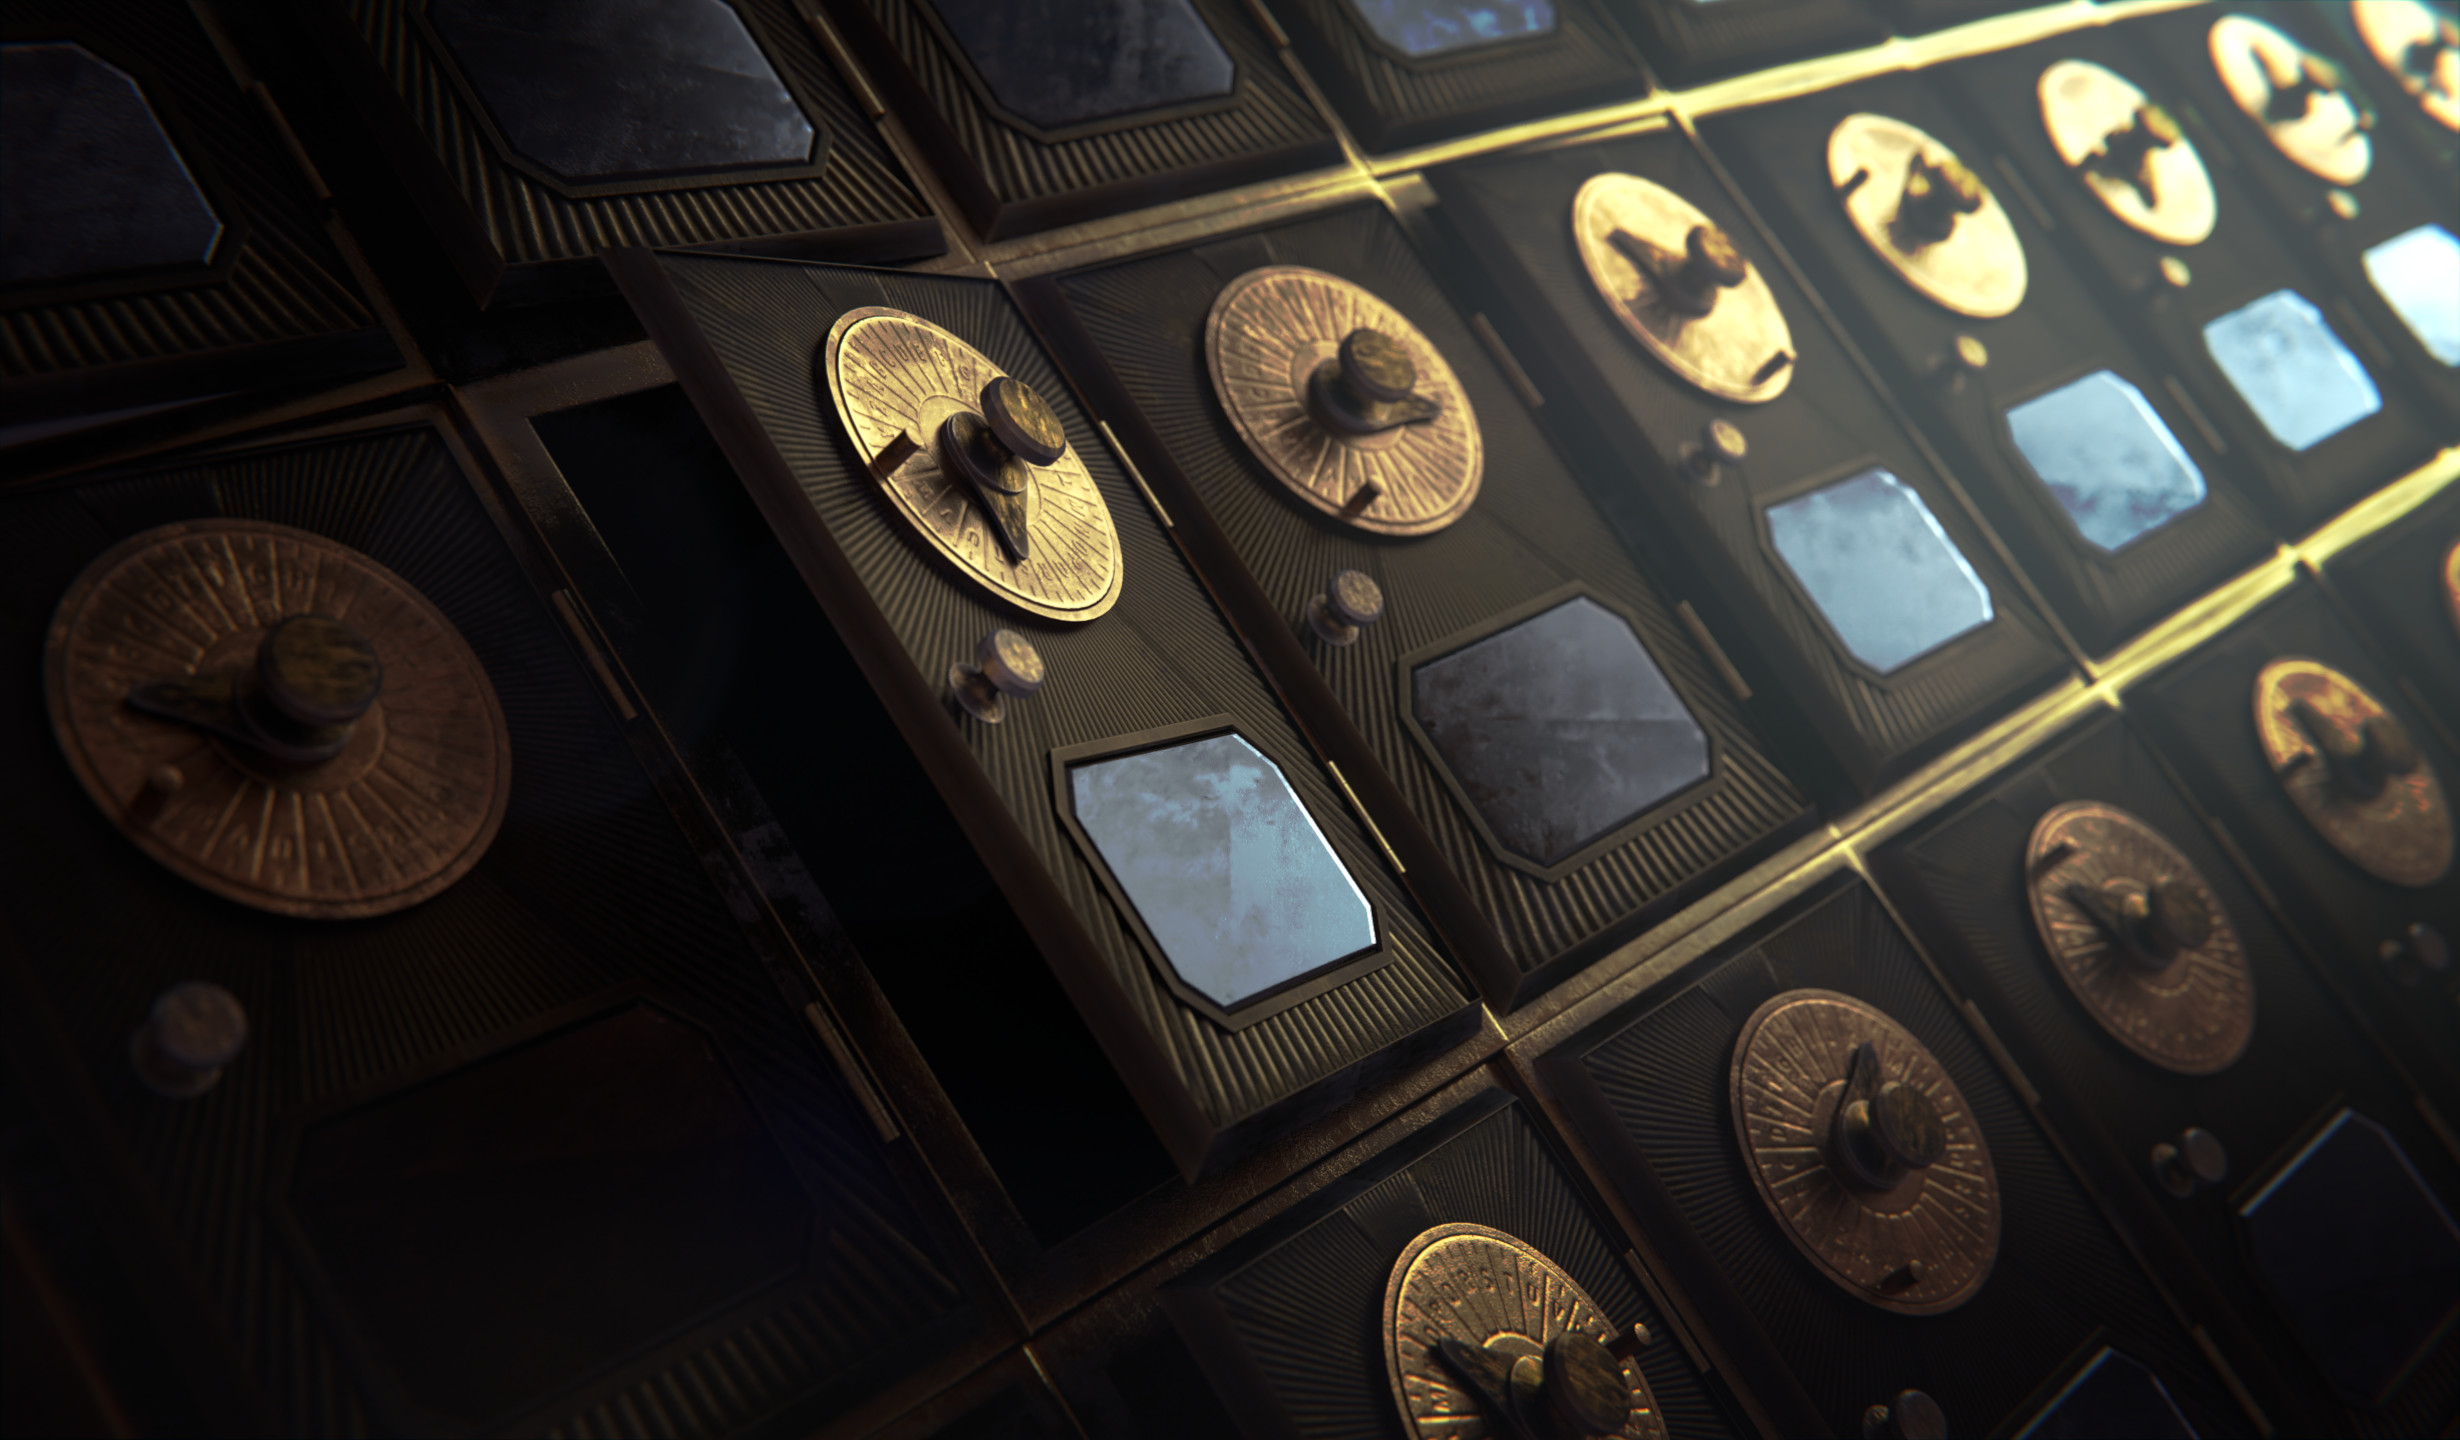 Wall of Mailboxes Covering modelling rendering and compositing